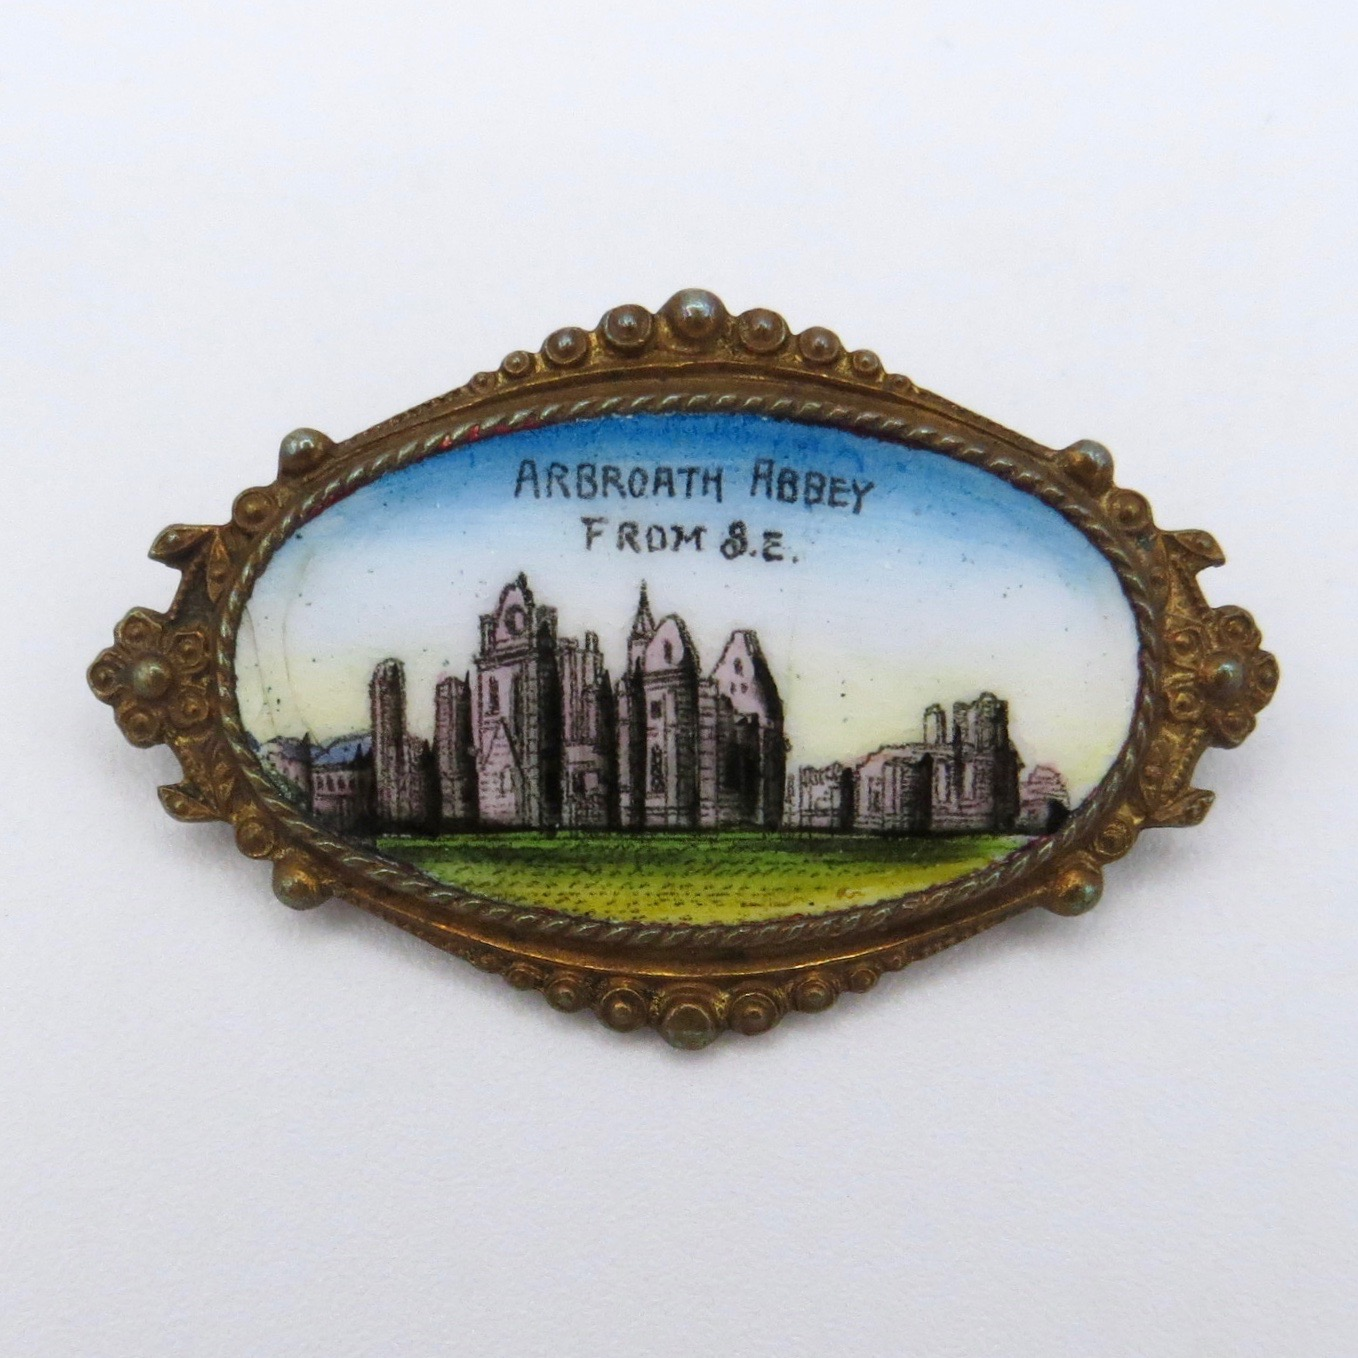 Arbroath Abbey Brooch